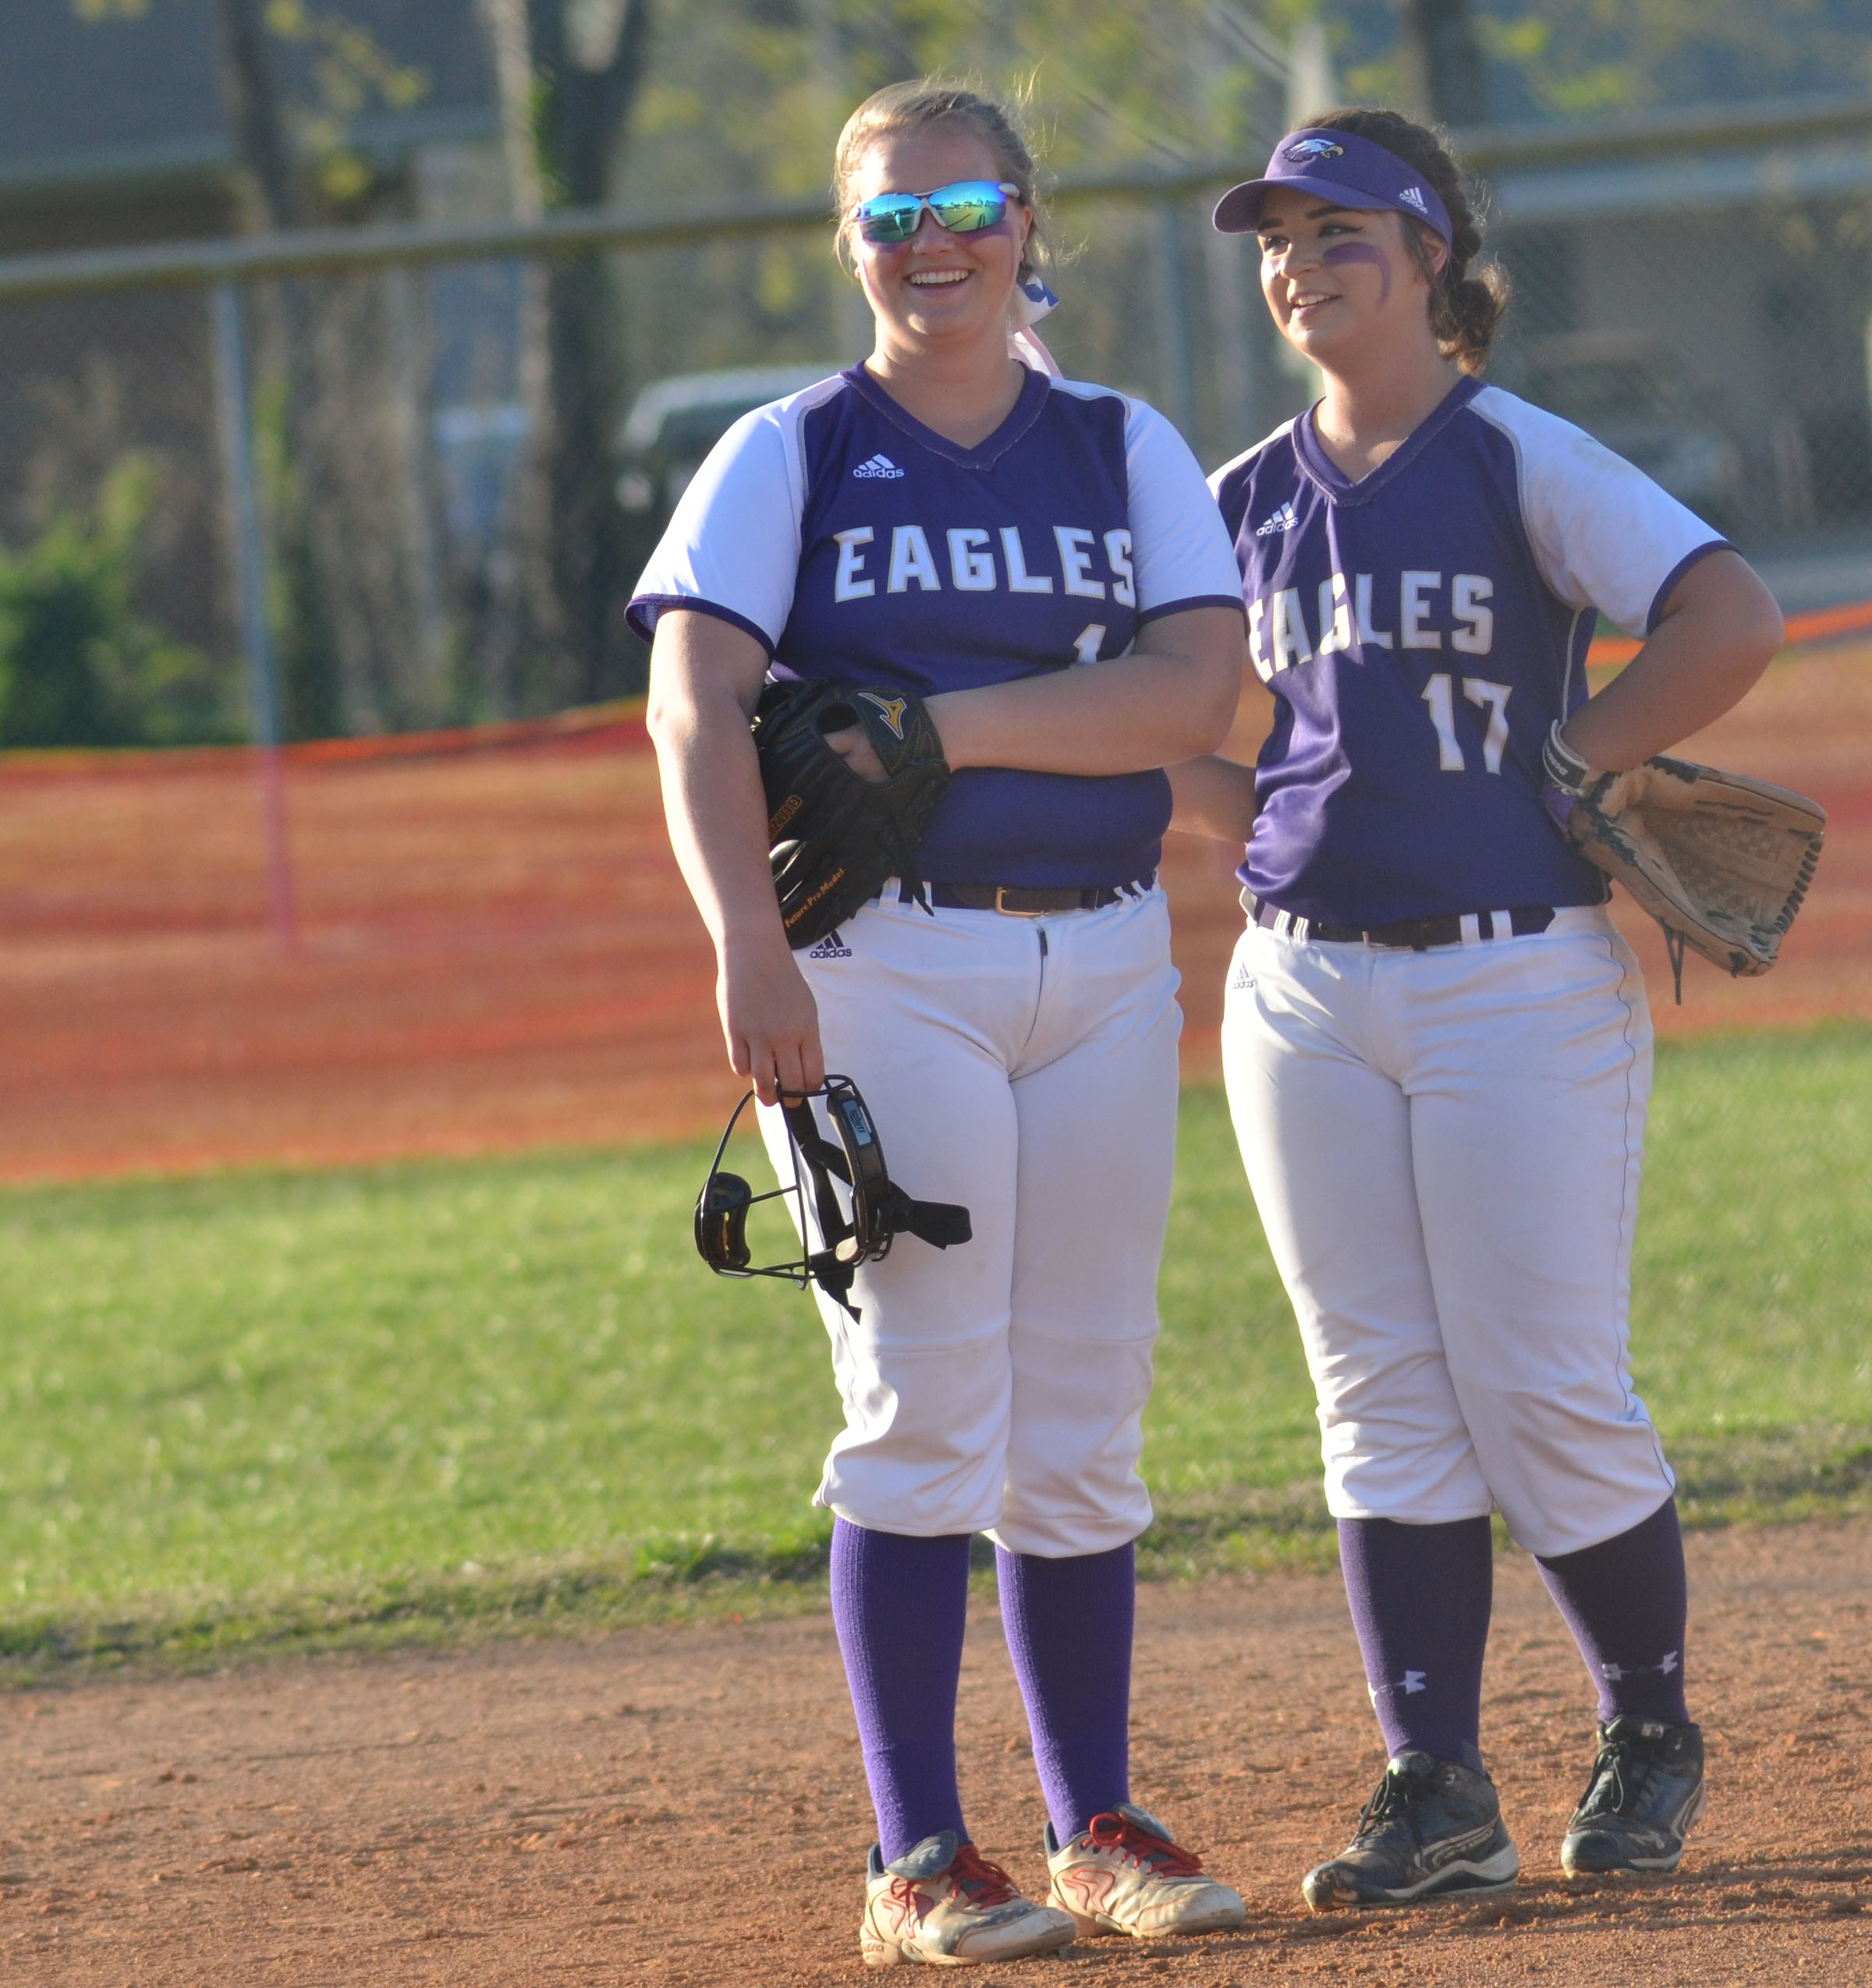 CHS seniors Brenna Wethington, at left, and Kailey Morris share a laugh between innings.